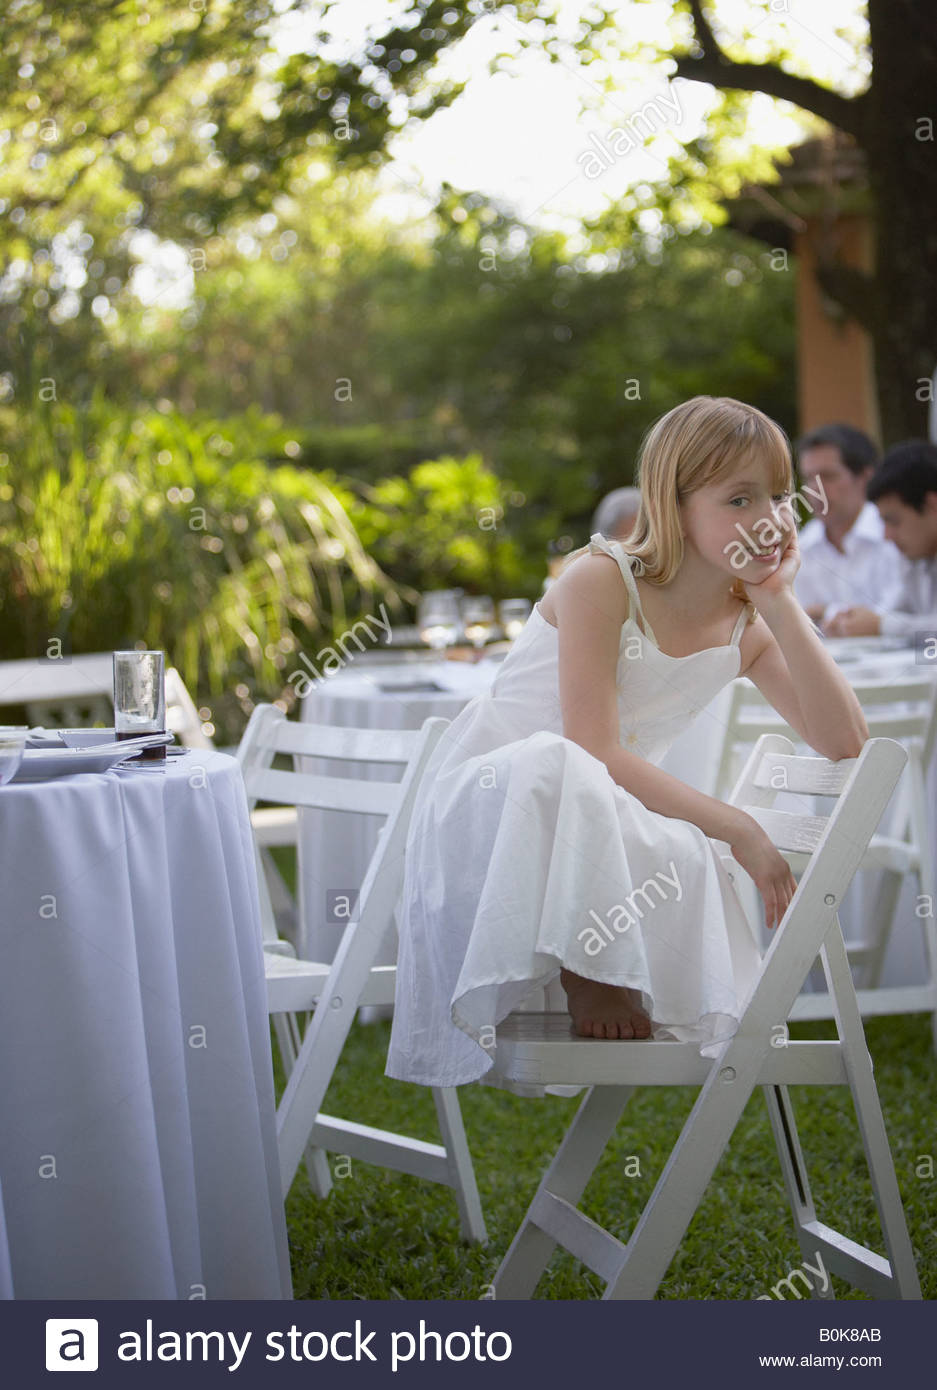 Young girl crouched on chair at outdoor party smiling Stock Photo